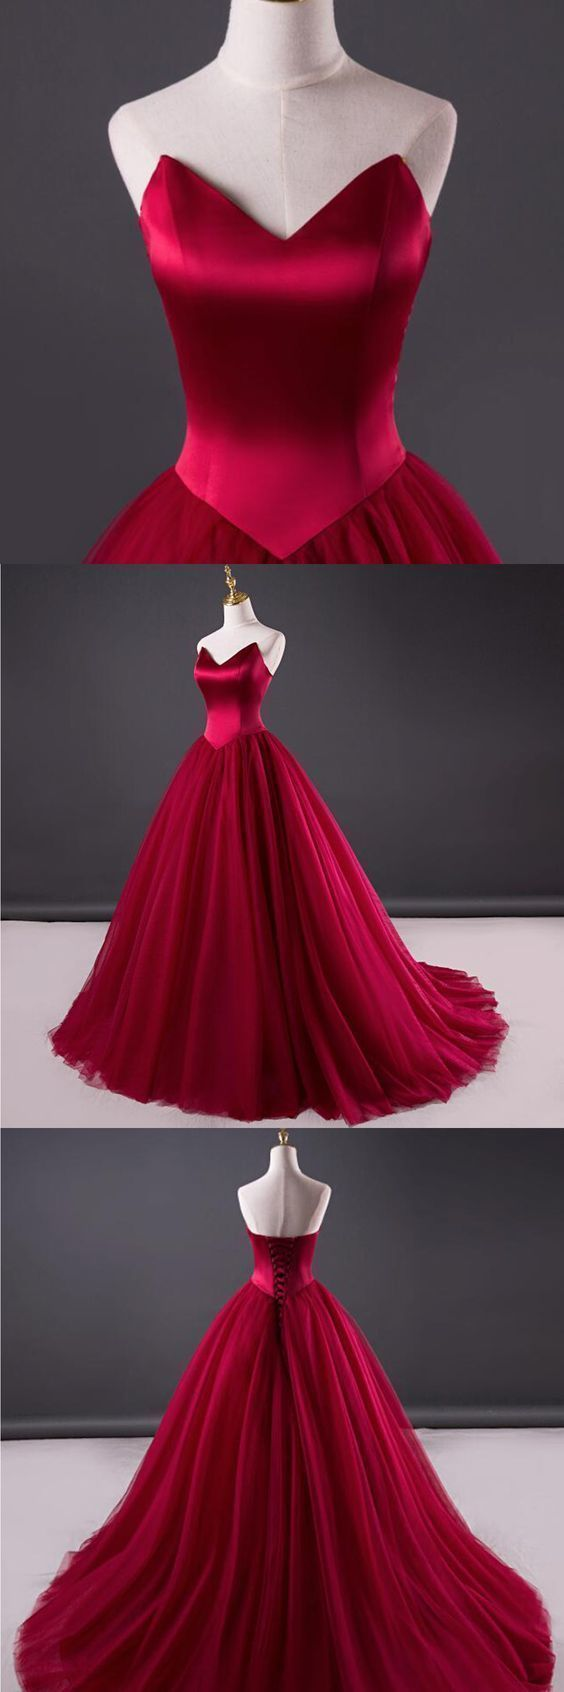 Prom Dresses,Wine Red Prom Dress,New Prom Gown,Evening Gowns,Ball ...